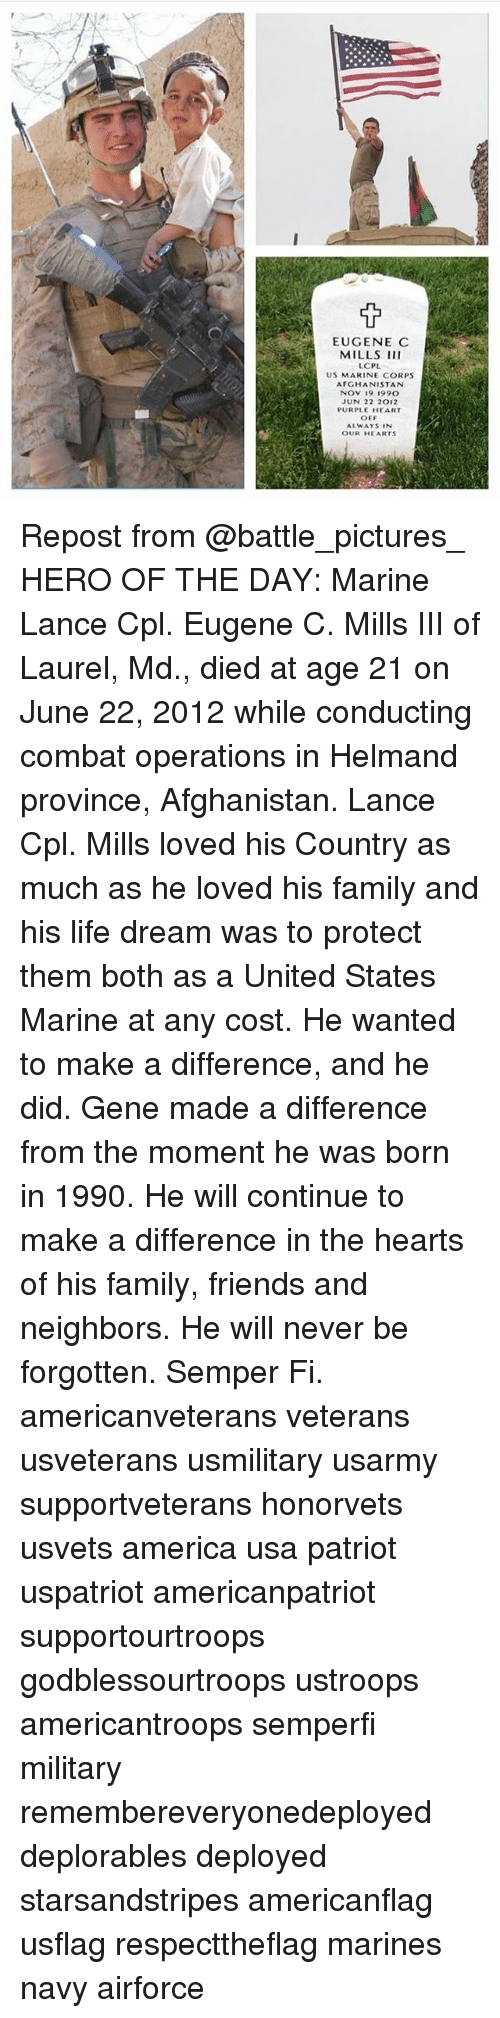 America, Family, and Friends: EUGENE C  MILLS III  LCPL  US MARINE CORPS  AFGHANISTAN  NOV 19 1990  JUN 22 2012  PURPLE HEART  OEF  ALWAYS IN  OUR HEARTS Repost from @battle_pictures_ HERO OF THE DAY: Marine Lance Cpl. Eugene C. Mills III of Laurel, Md., died at age 21 on June 22, 2012 while conducting combat operations in Helmand province, Afghanistan. Lance Cpl. Mills loved his Country as much as he loved his family and his life dream was to protect them both as a United States Marine at any cost. He wanted to make a difference, and he did. Gene made a difference from the moment he was born in 1990. He will continue to make a difference in the hearts of his family, friends and neighbors. He will never be forgotten. Semper Fi. americanveterans veterans usveterans usmilitary usarmy supportveterans honorvets usvets america usa patriot uspatriot americanpatriot supportourtroops godblessourtroops ustroops americantroops semperfi military remembereveryonedeployed deplorables deployed starsandstripes americanflag usflag respecttheflag marines navy airforce